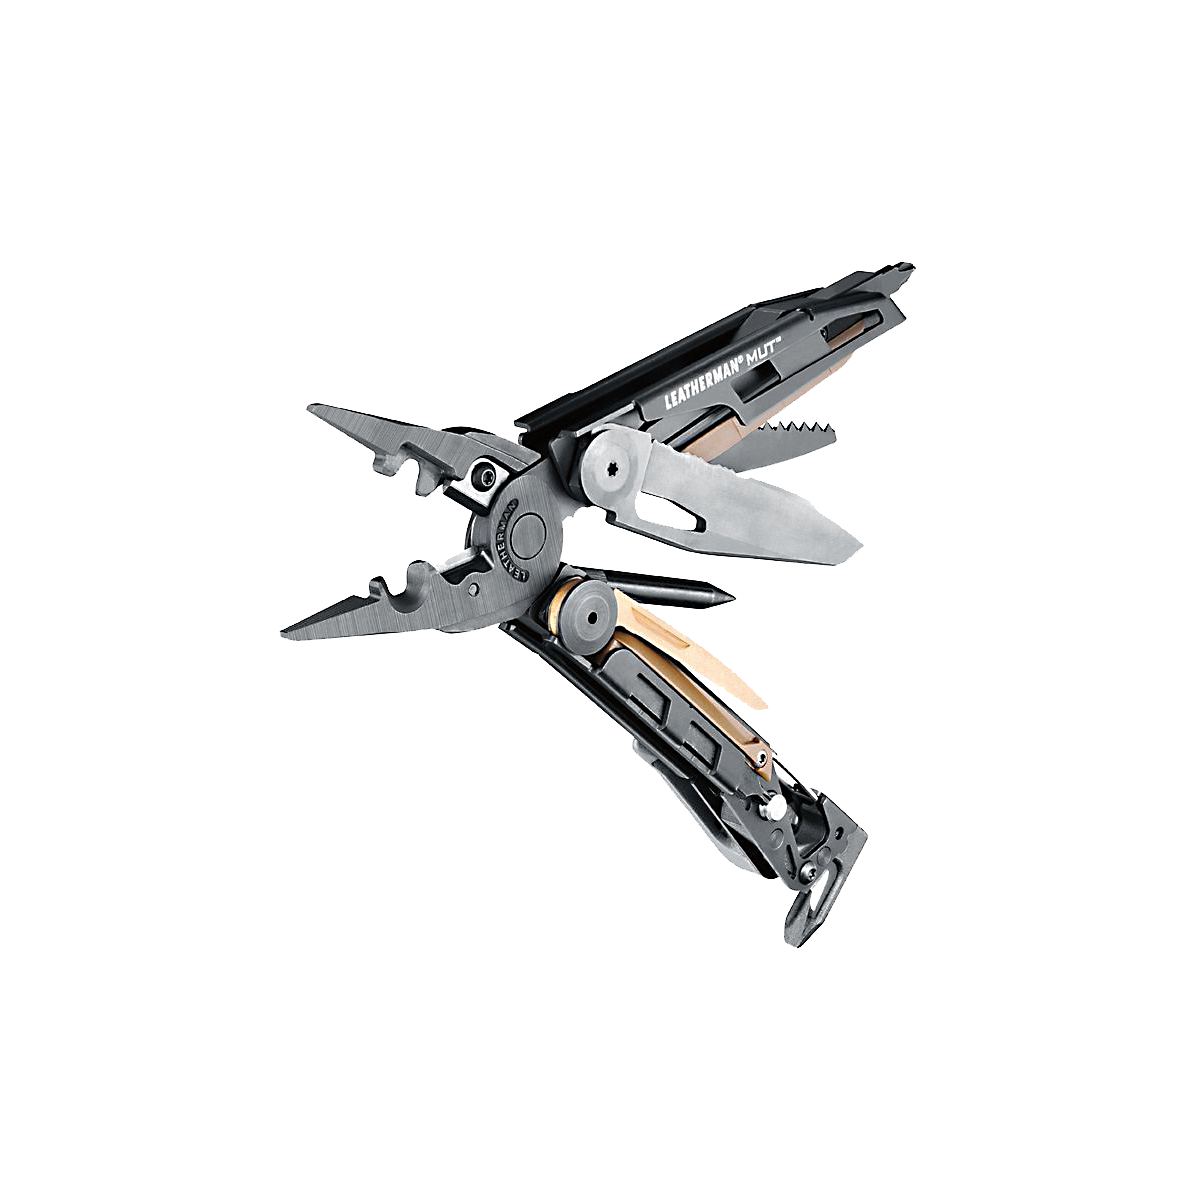 Leatherman mut eod multi-tool, open angle view, 15 tools, black